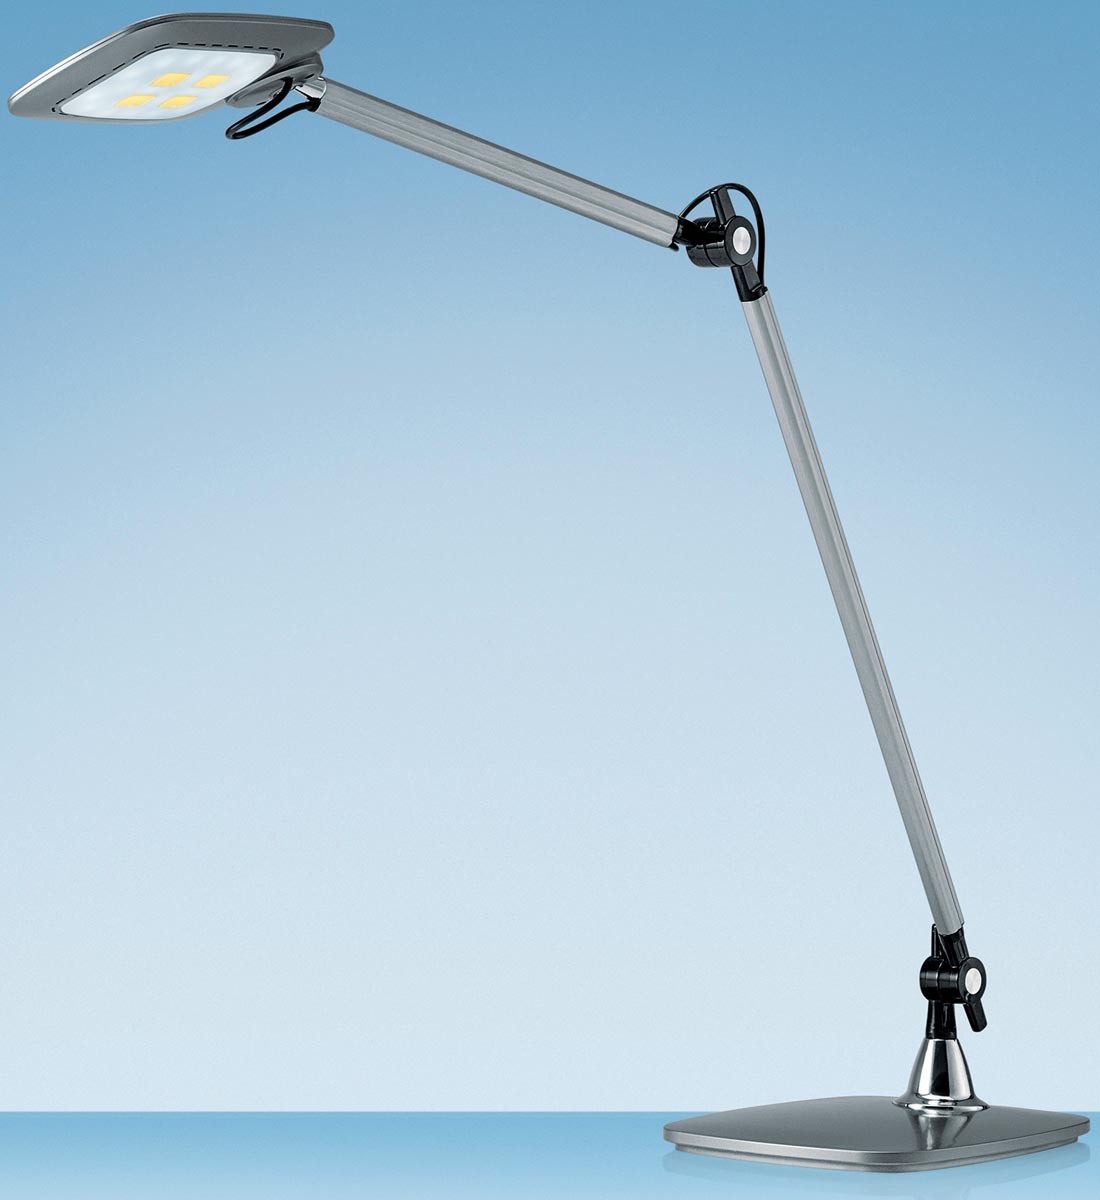 Hansa bureaulamp E-Motion, LED-lamp, zilver